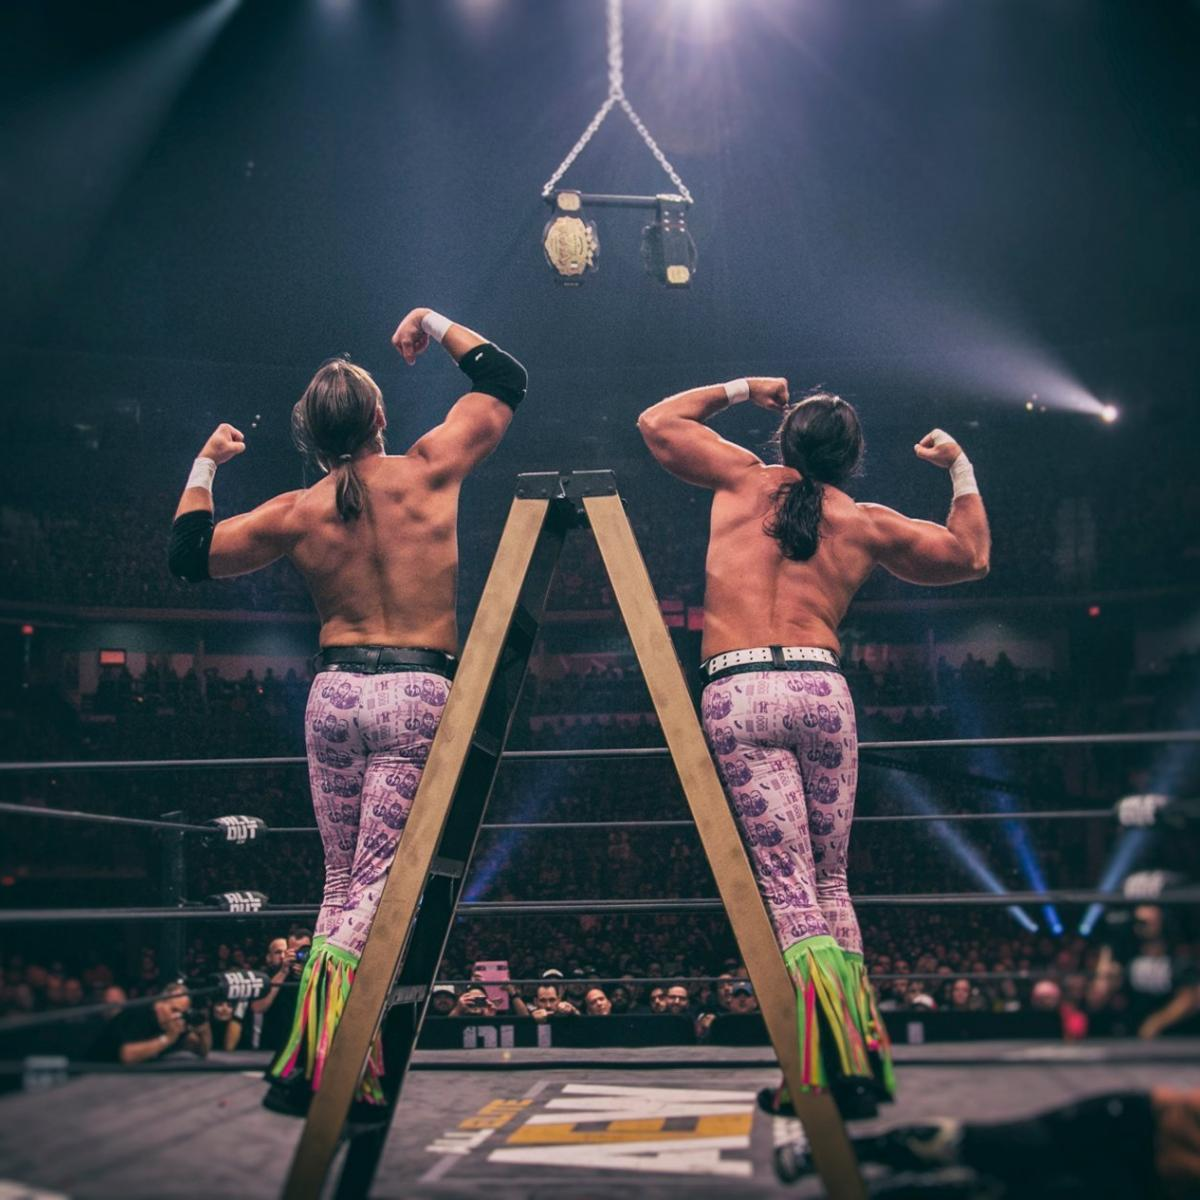 Off the Top Rope: The Young Bucks on Ladder Matches, Vince McMahon and AEW